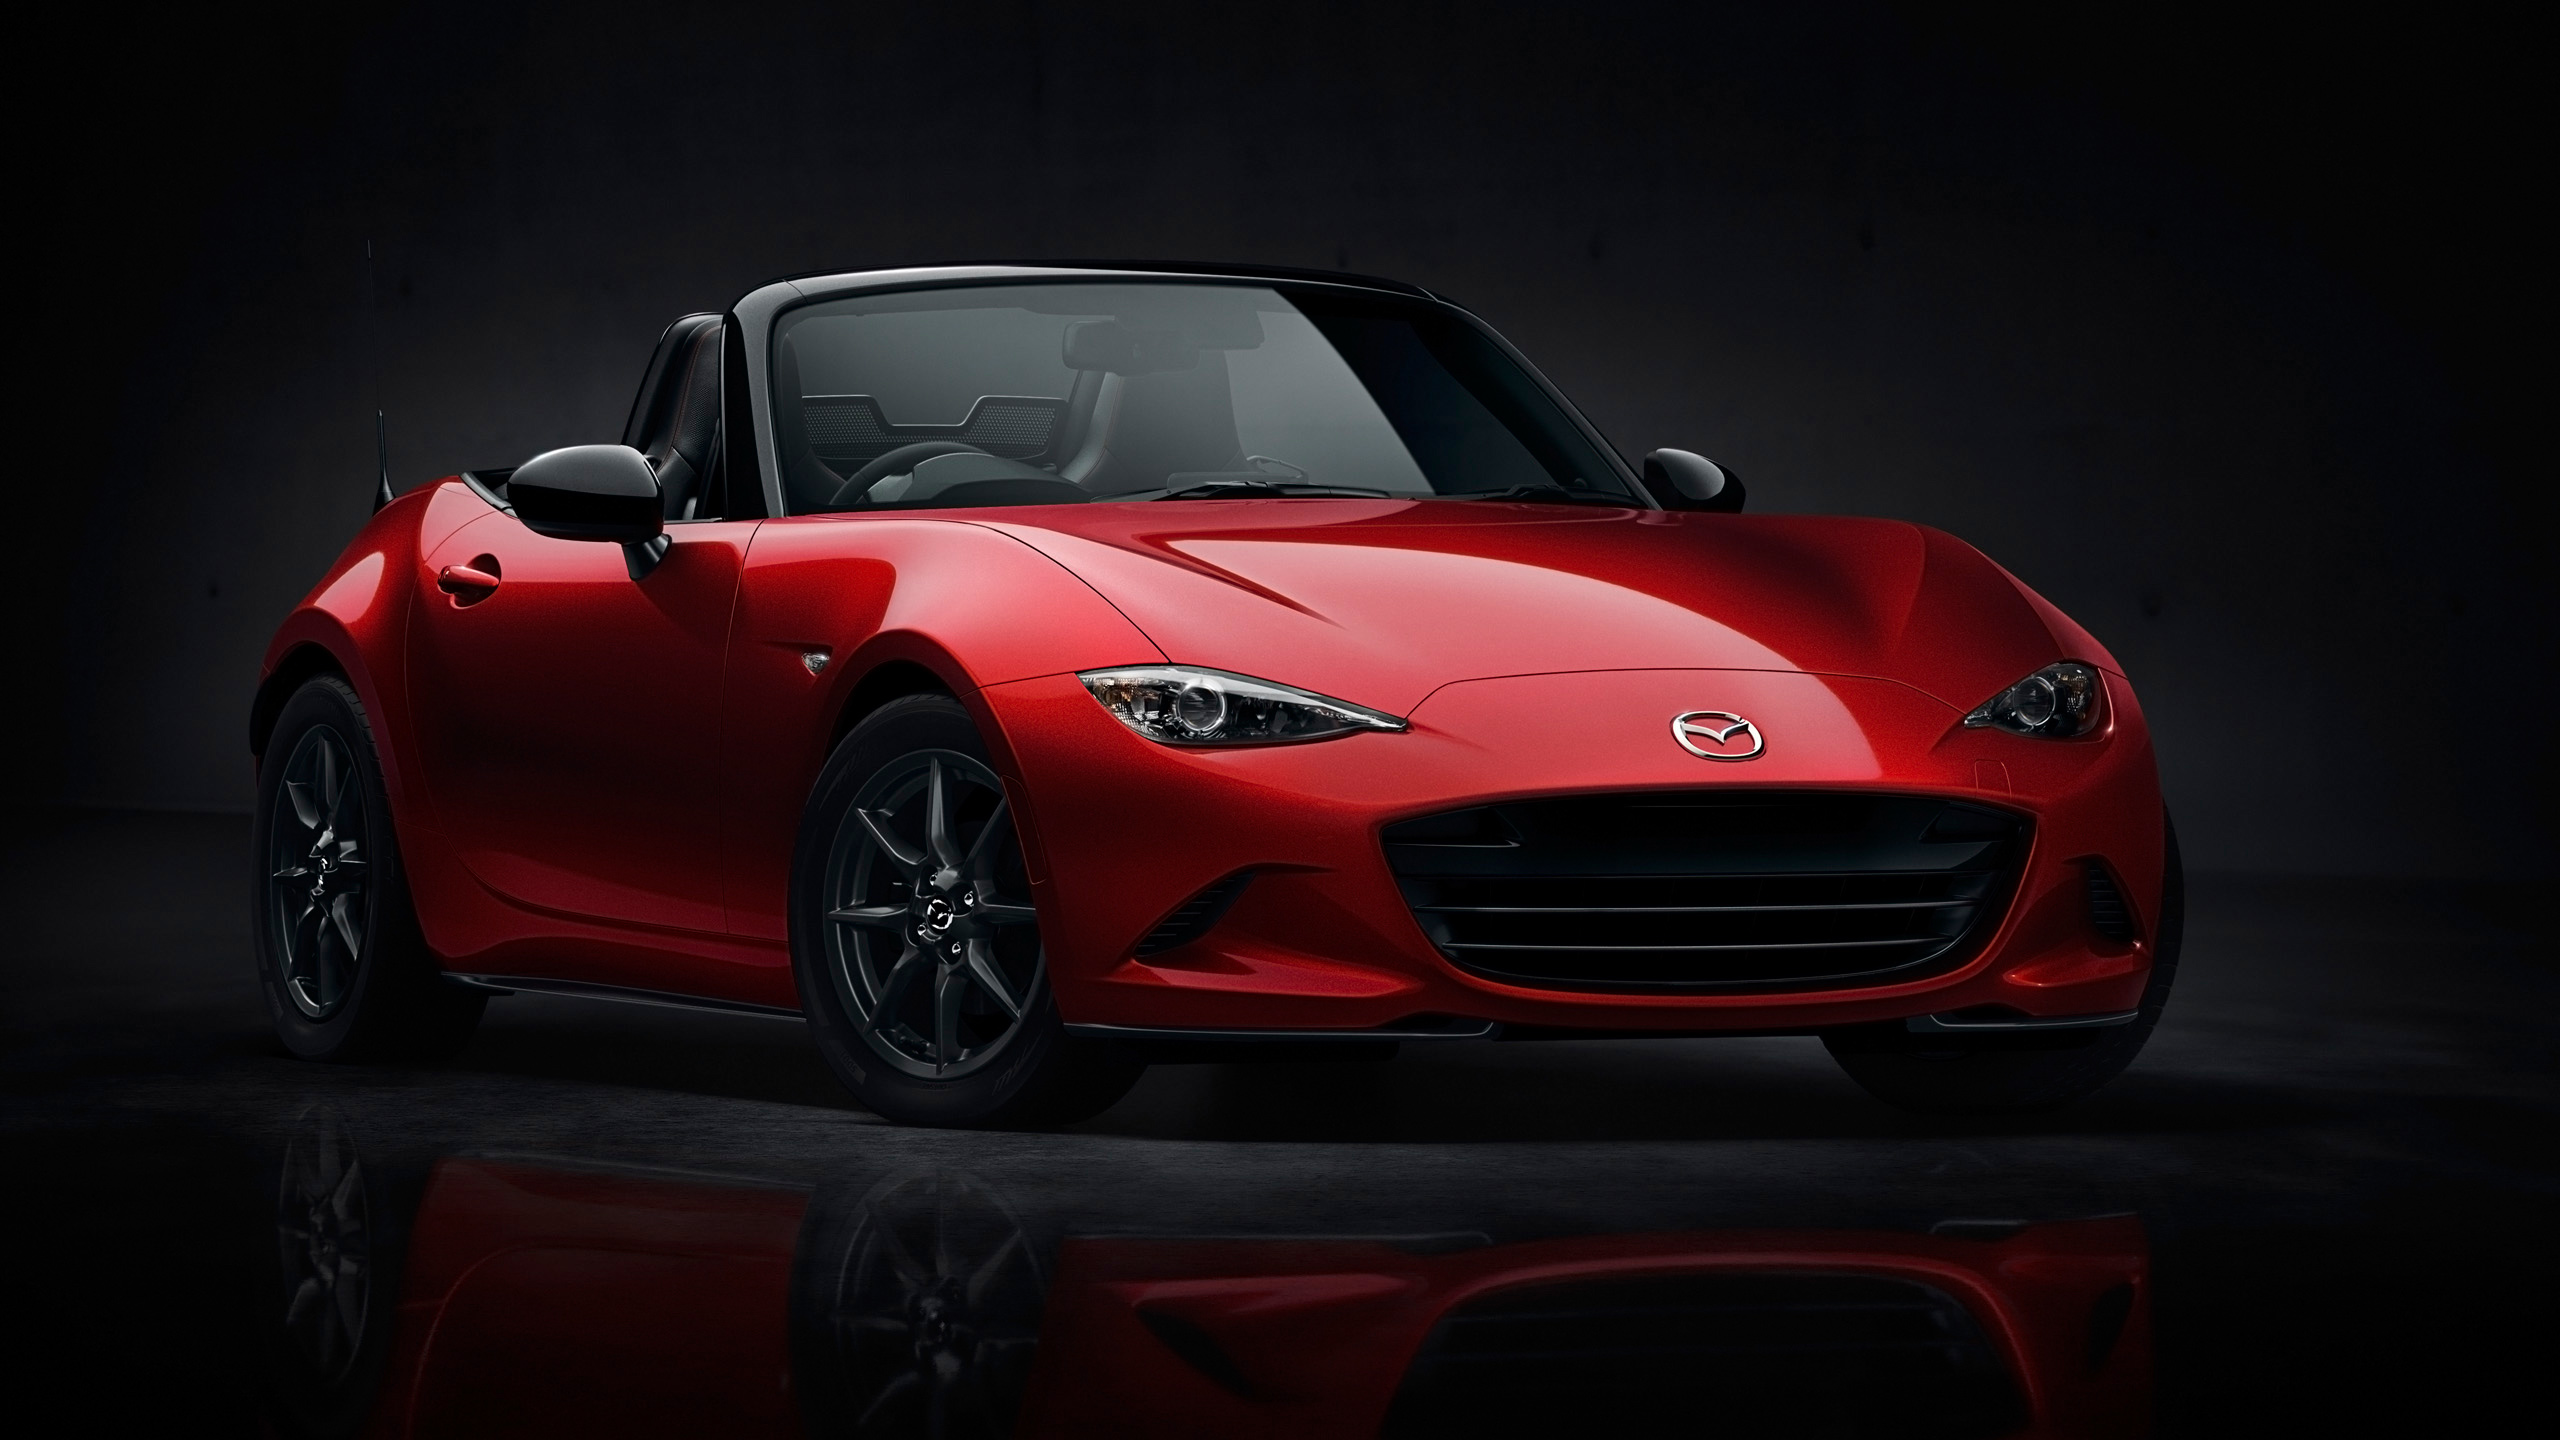 2016 mazda mx 5 miata wallpaper hd car wallpapers. Black Bedroom Furniture Sets. Home Design Ideas